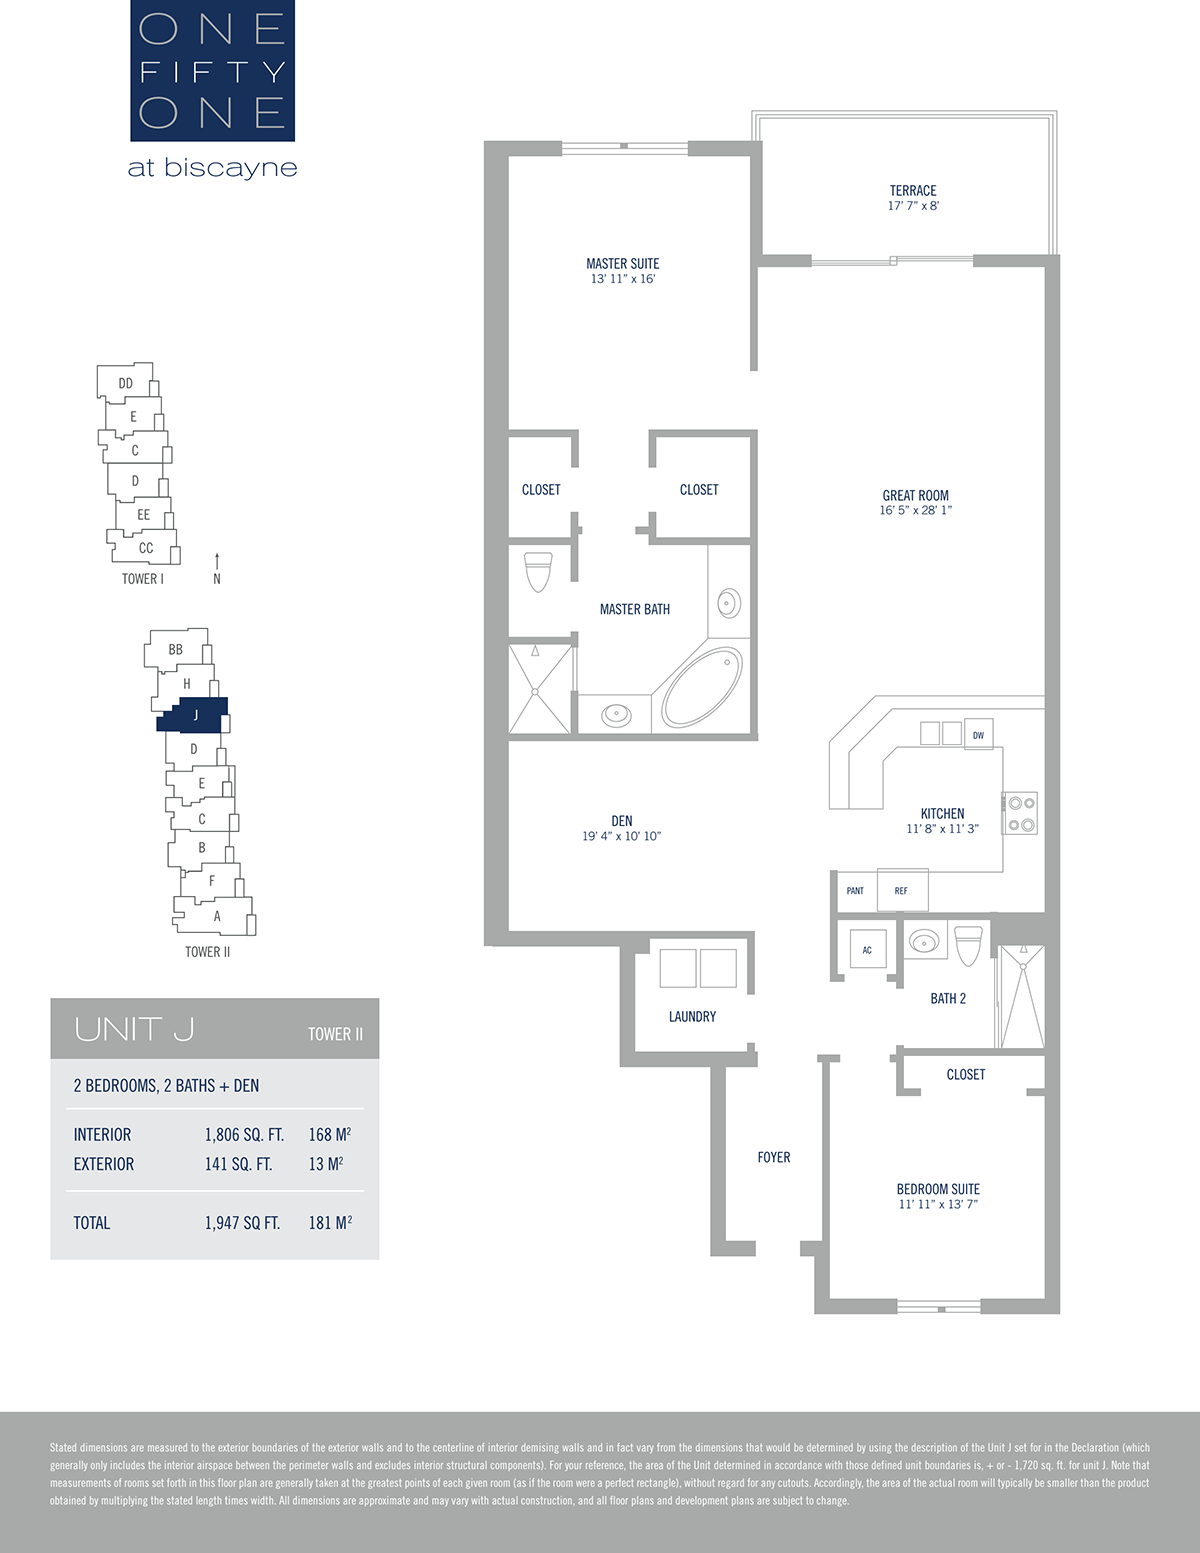 One Fifty One At Biscayne - Floorplan 10